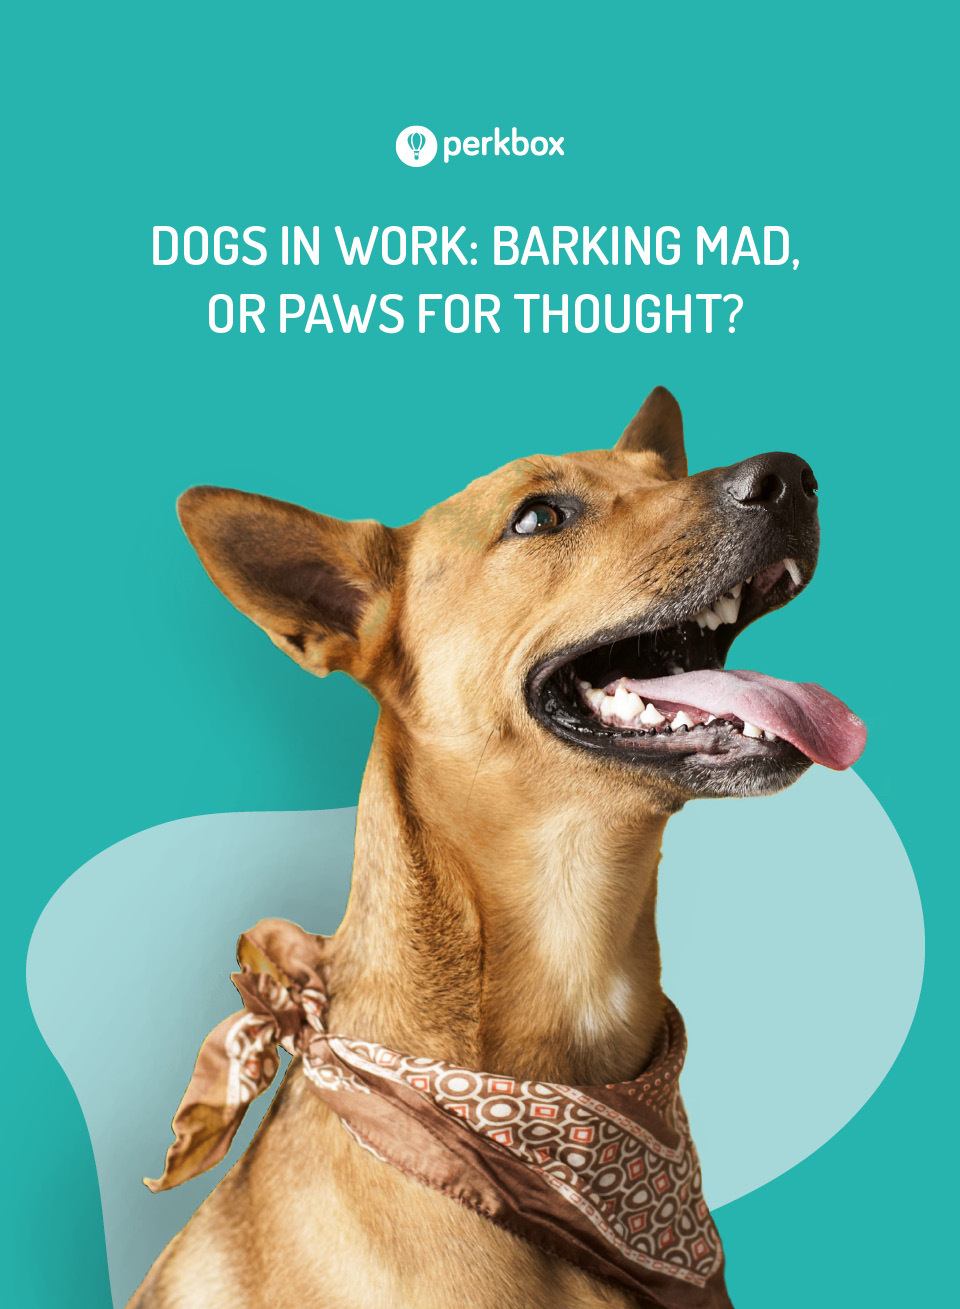 Dogs in work: barking mad or paws for thought?